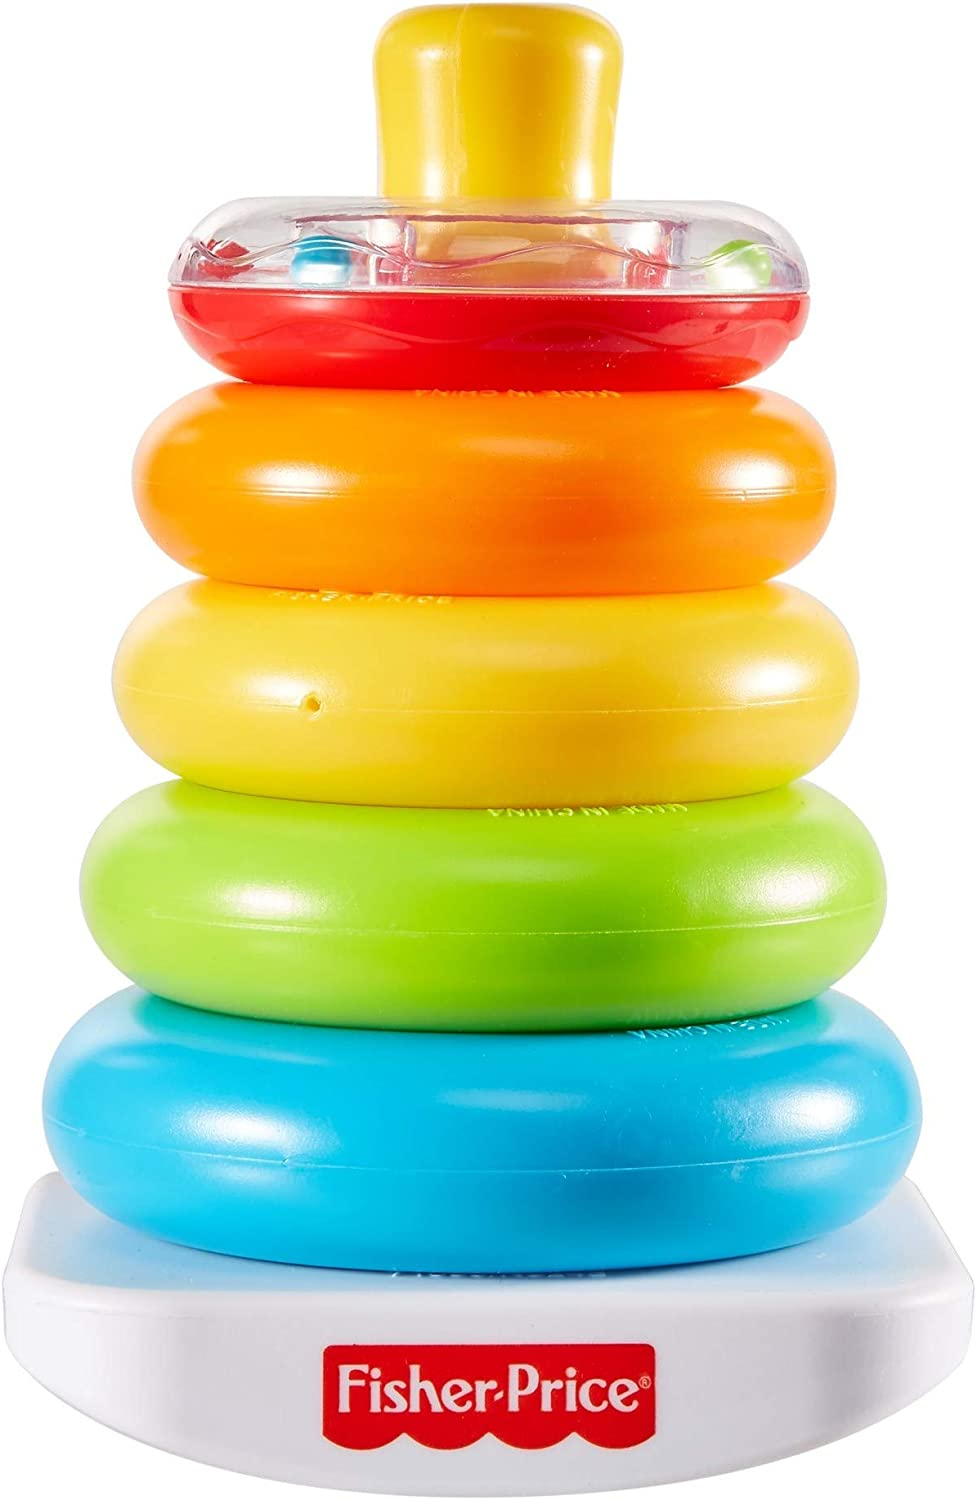 Fisher-Price Rock-a-Stack Toy! .99 at Amazon!